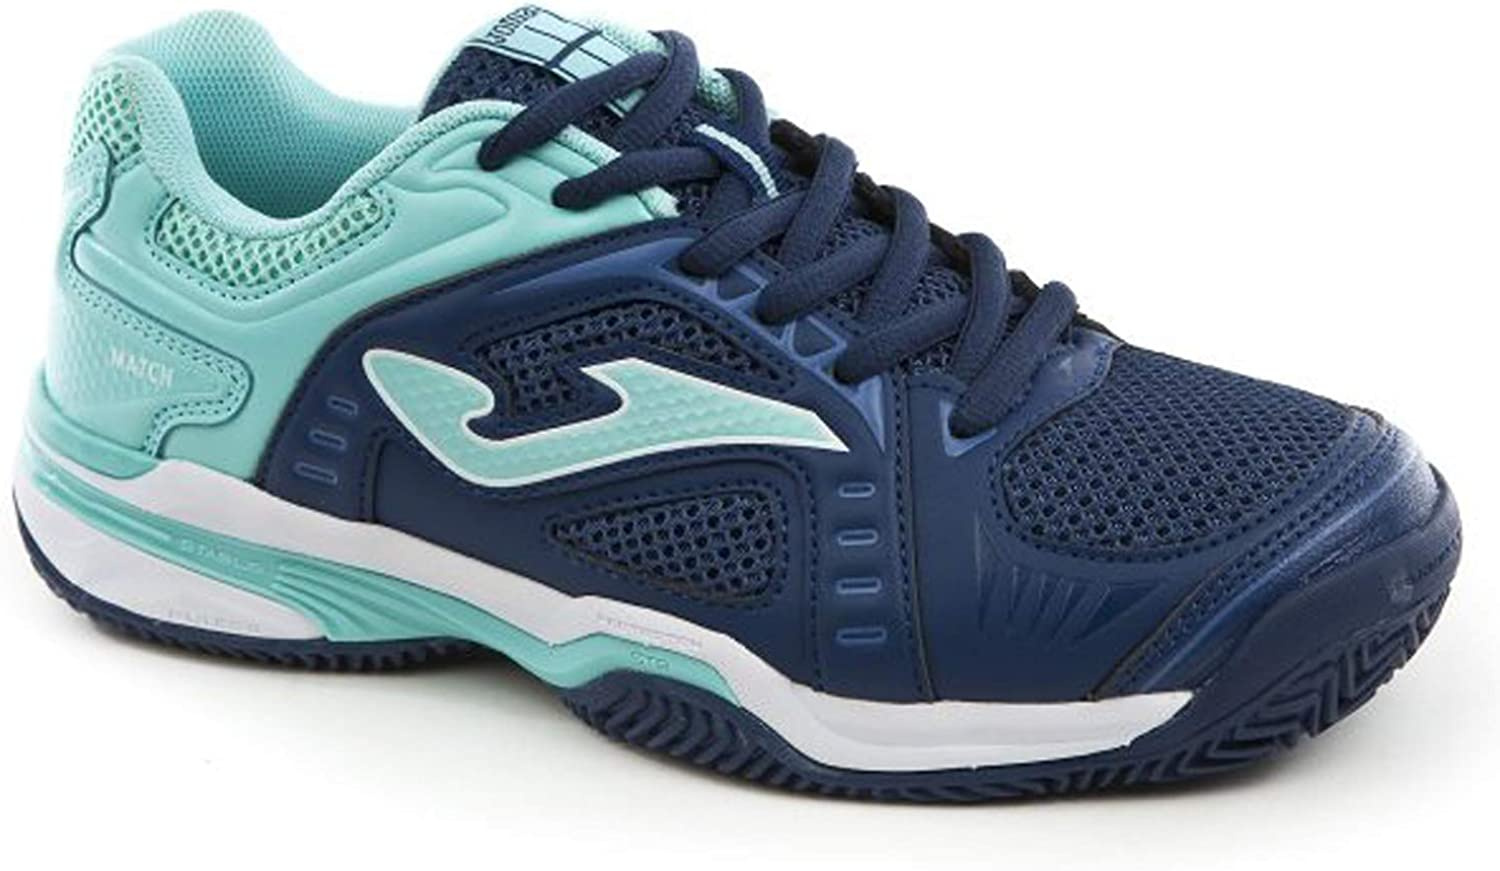 Joma Tennis shoes ON Earth T_Match Lady 803 Navy Scarpa women